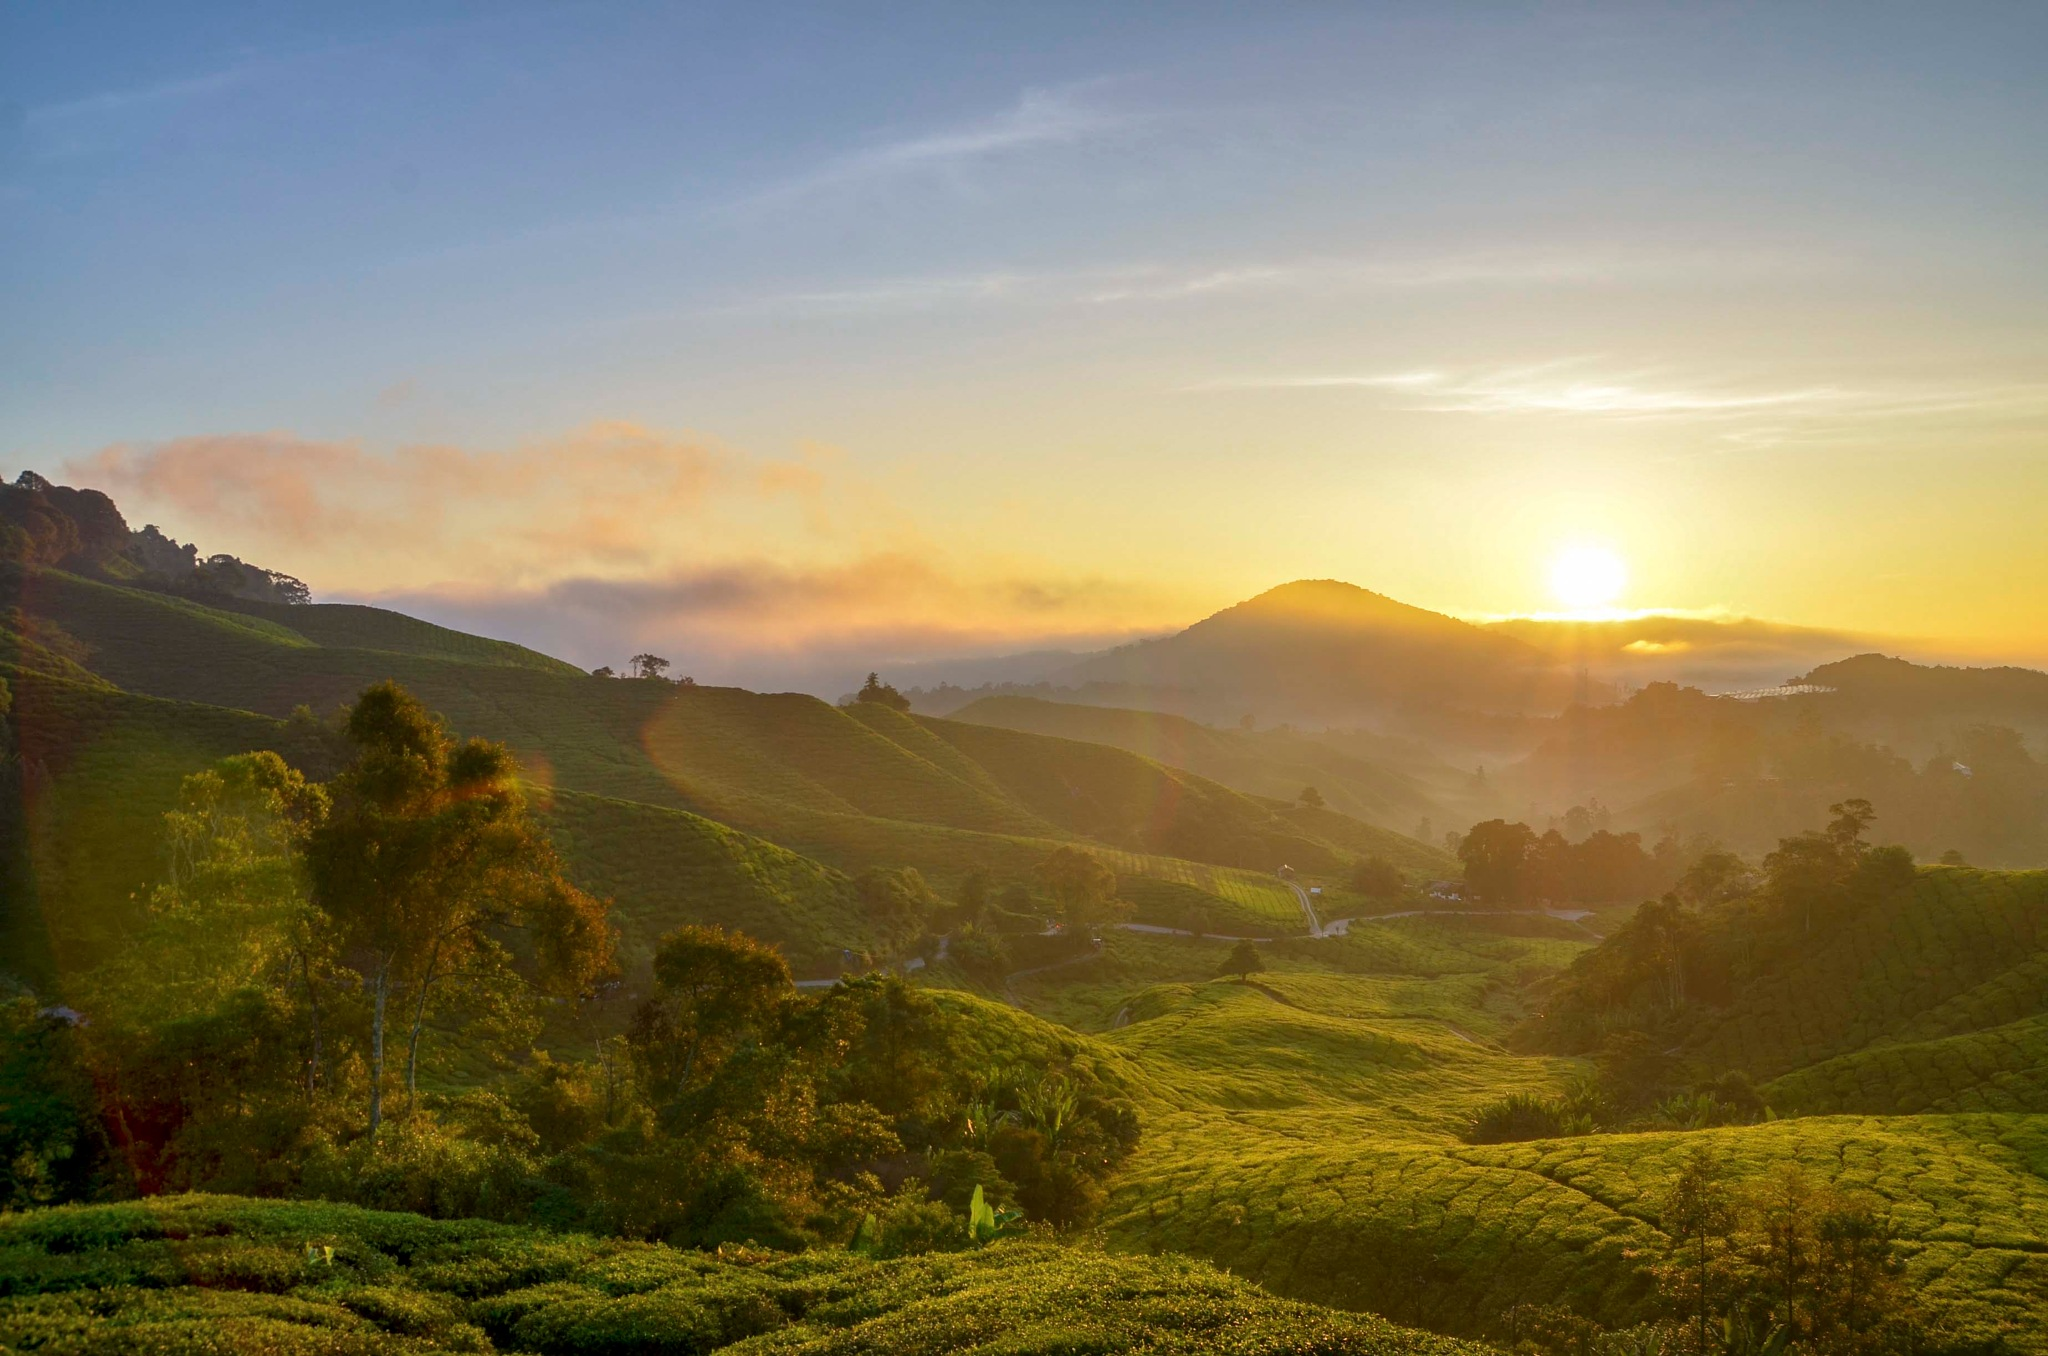 sunrise at tea farm by garywlyip